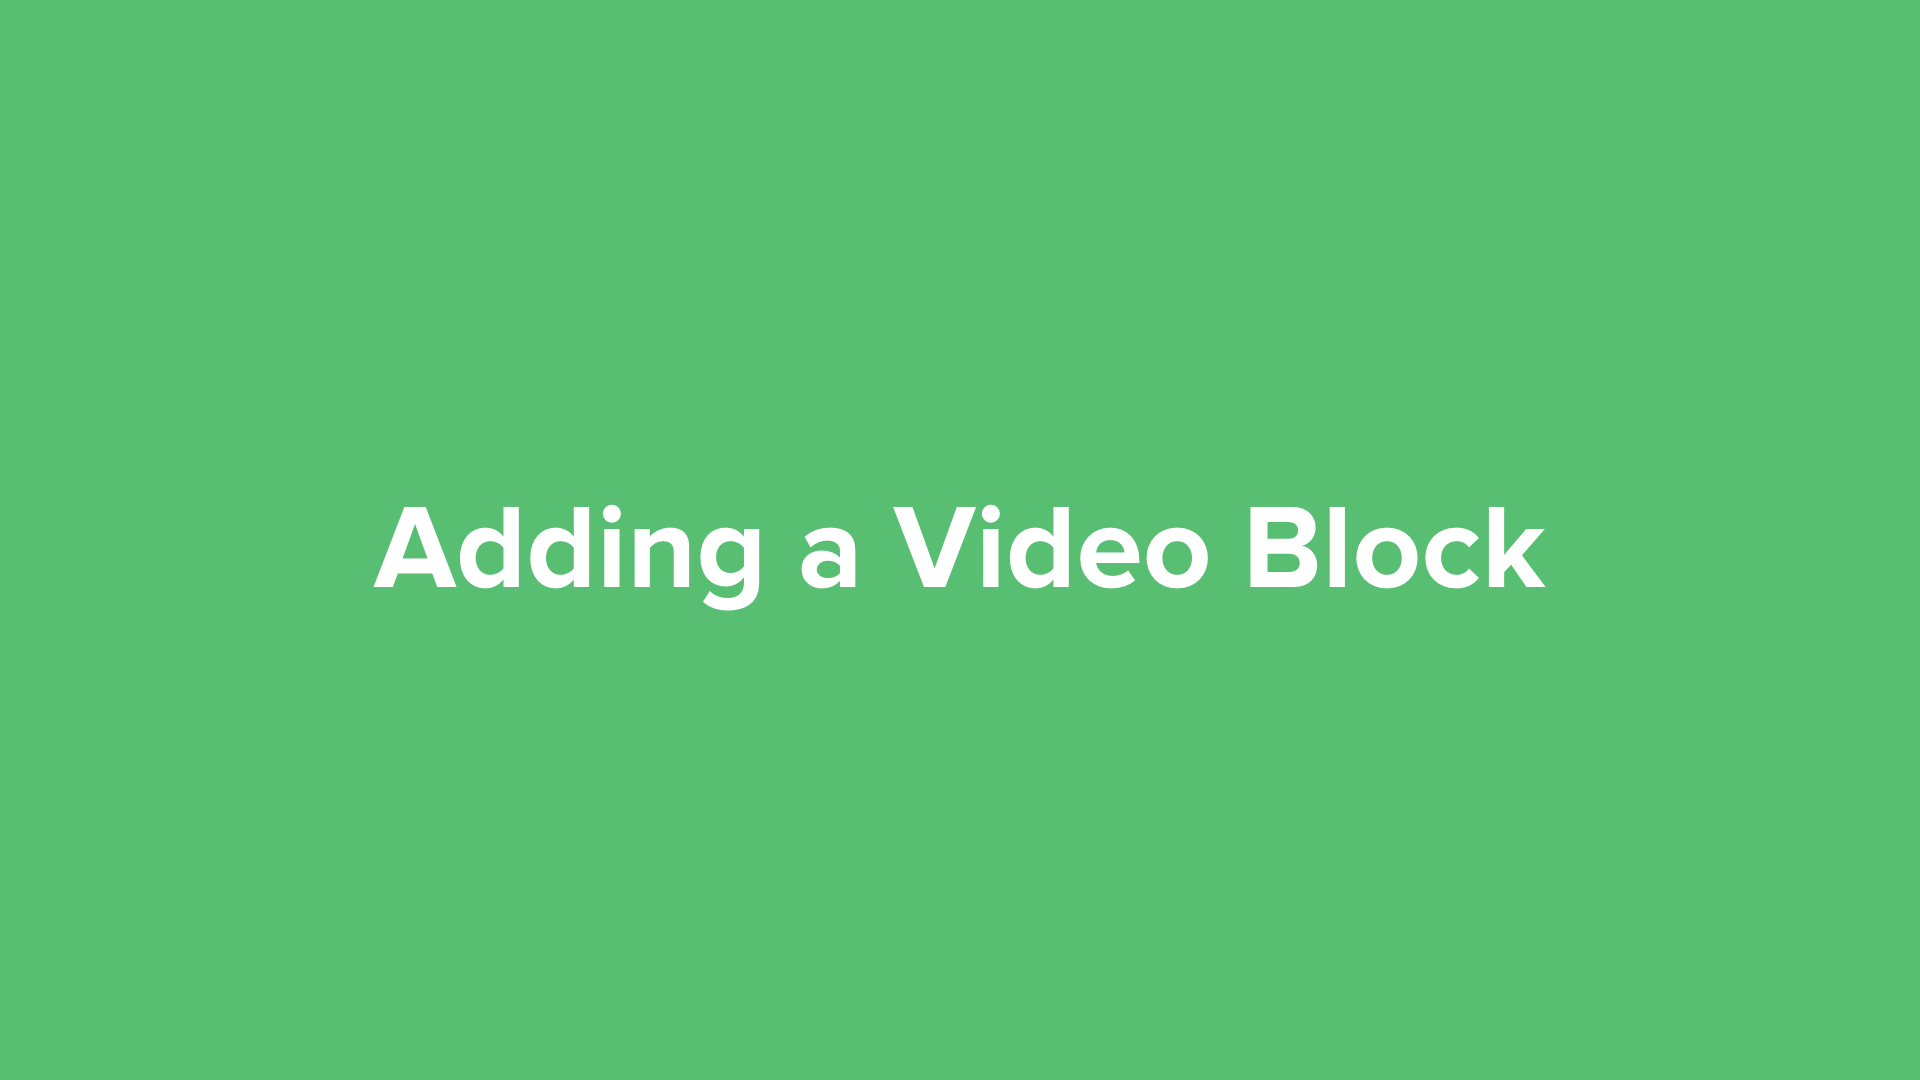 How to Embed Video in Email? - Video Tutorial